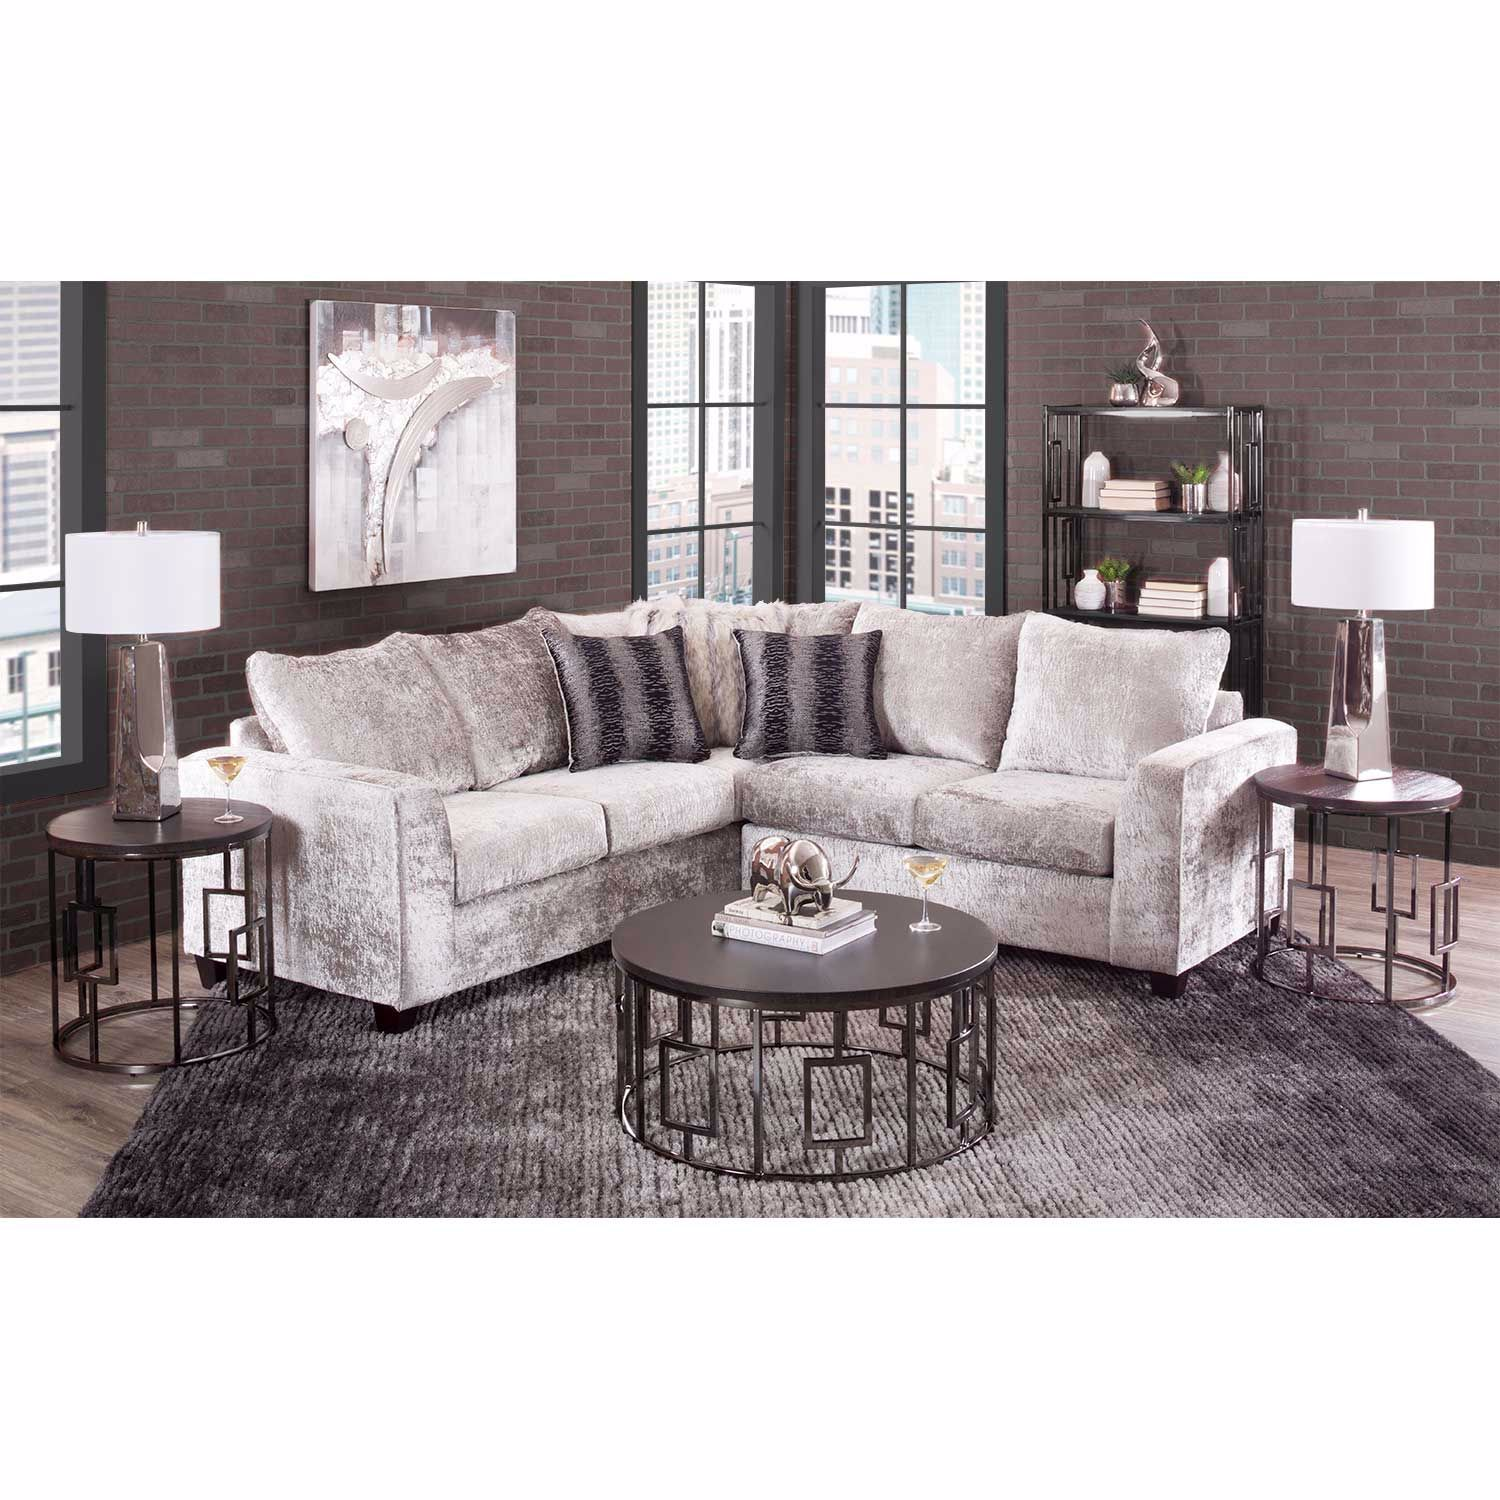 Picture of Majestic Cement 2 Piece Sectional